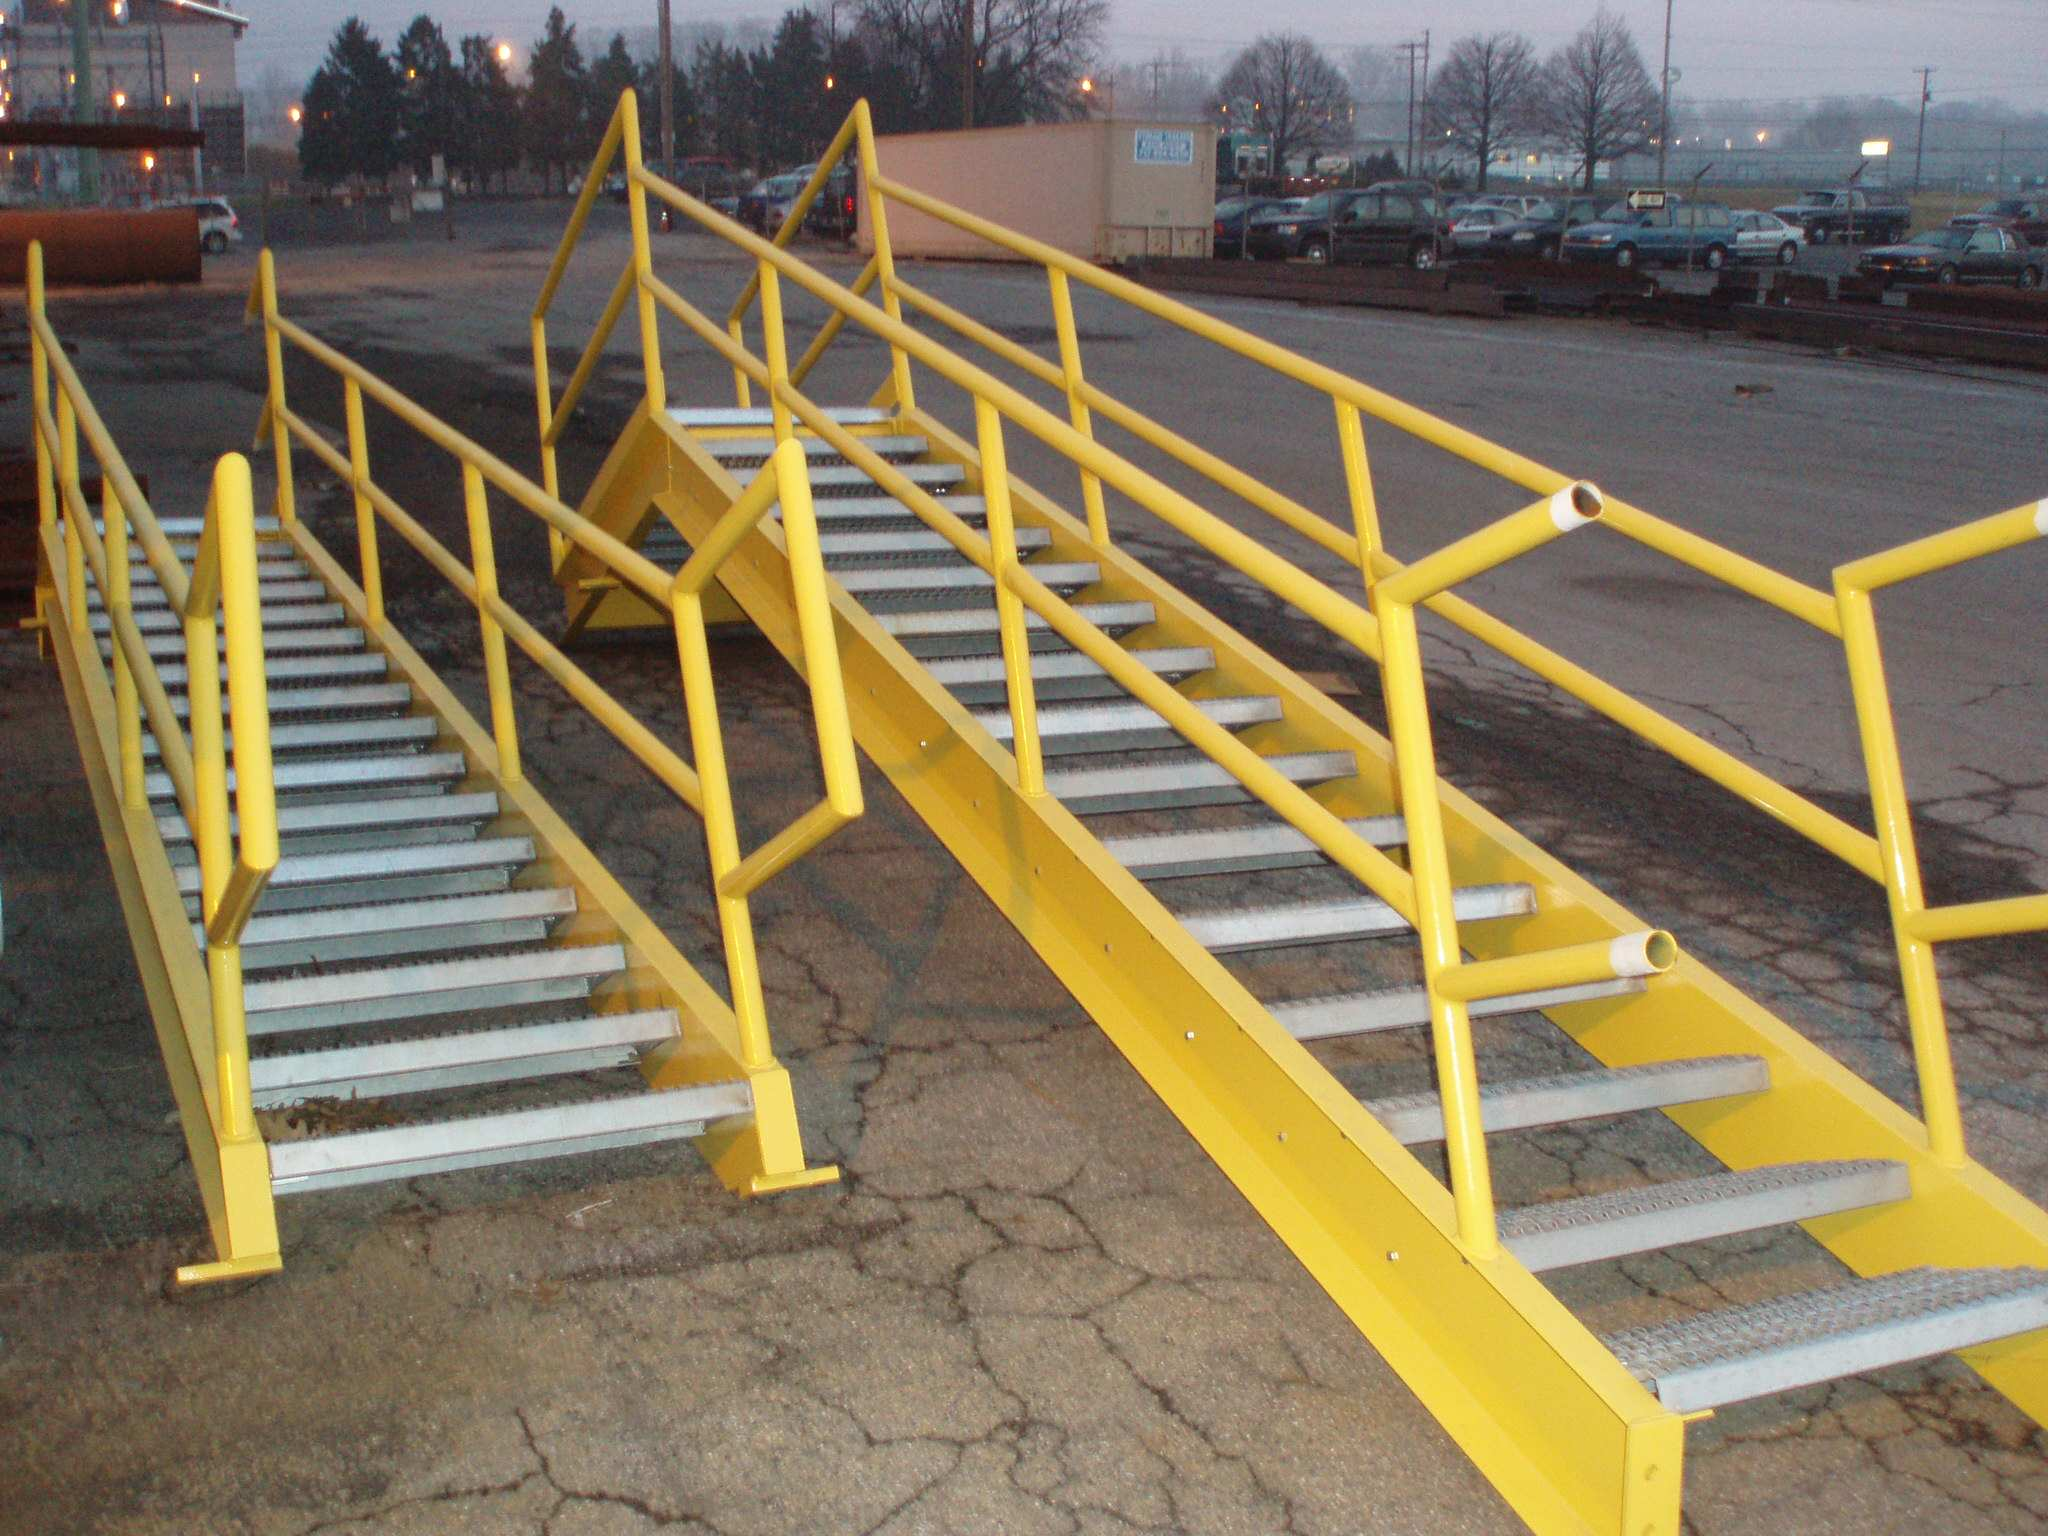 Finished Stairs Awaiting Pickup